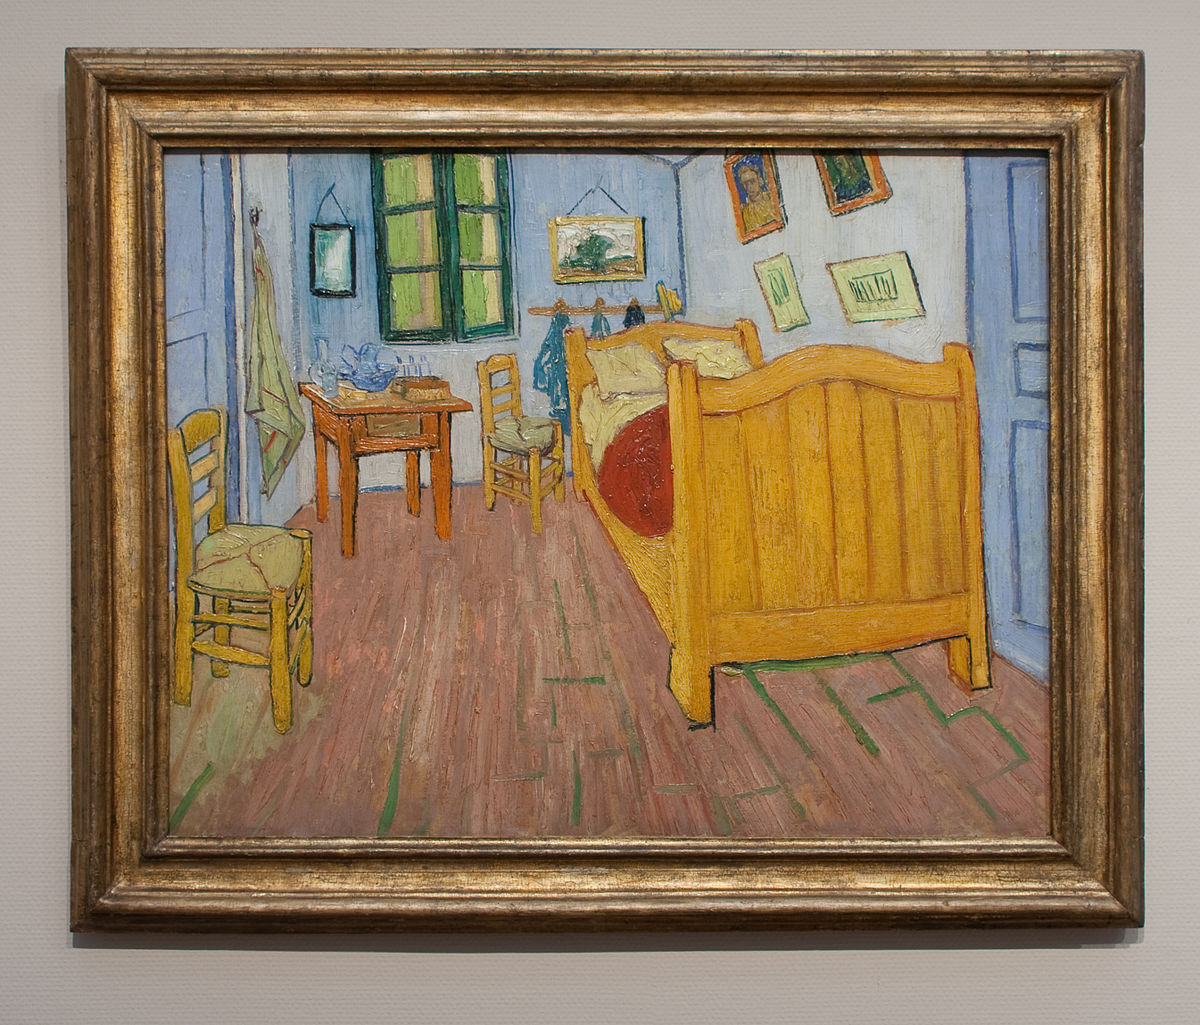 https://upload.wikimedia.org/wikipedia/commons/thumb/5/5d/WLANL_-_Pachango_-_De_slaapkamer%2C_Vincent_van_Gogh_%281888%29.jpg/1200px-WLANL_-_Pachango_-_De_slaapkamer%2C_Vincent_van_Gogh_%281888%29.jpg